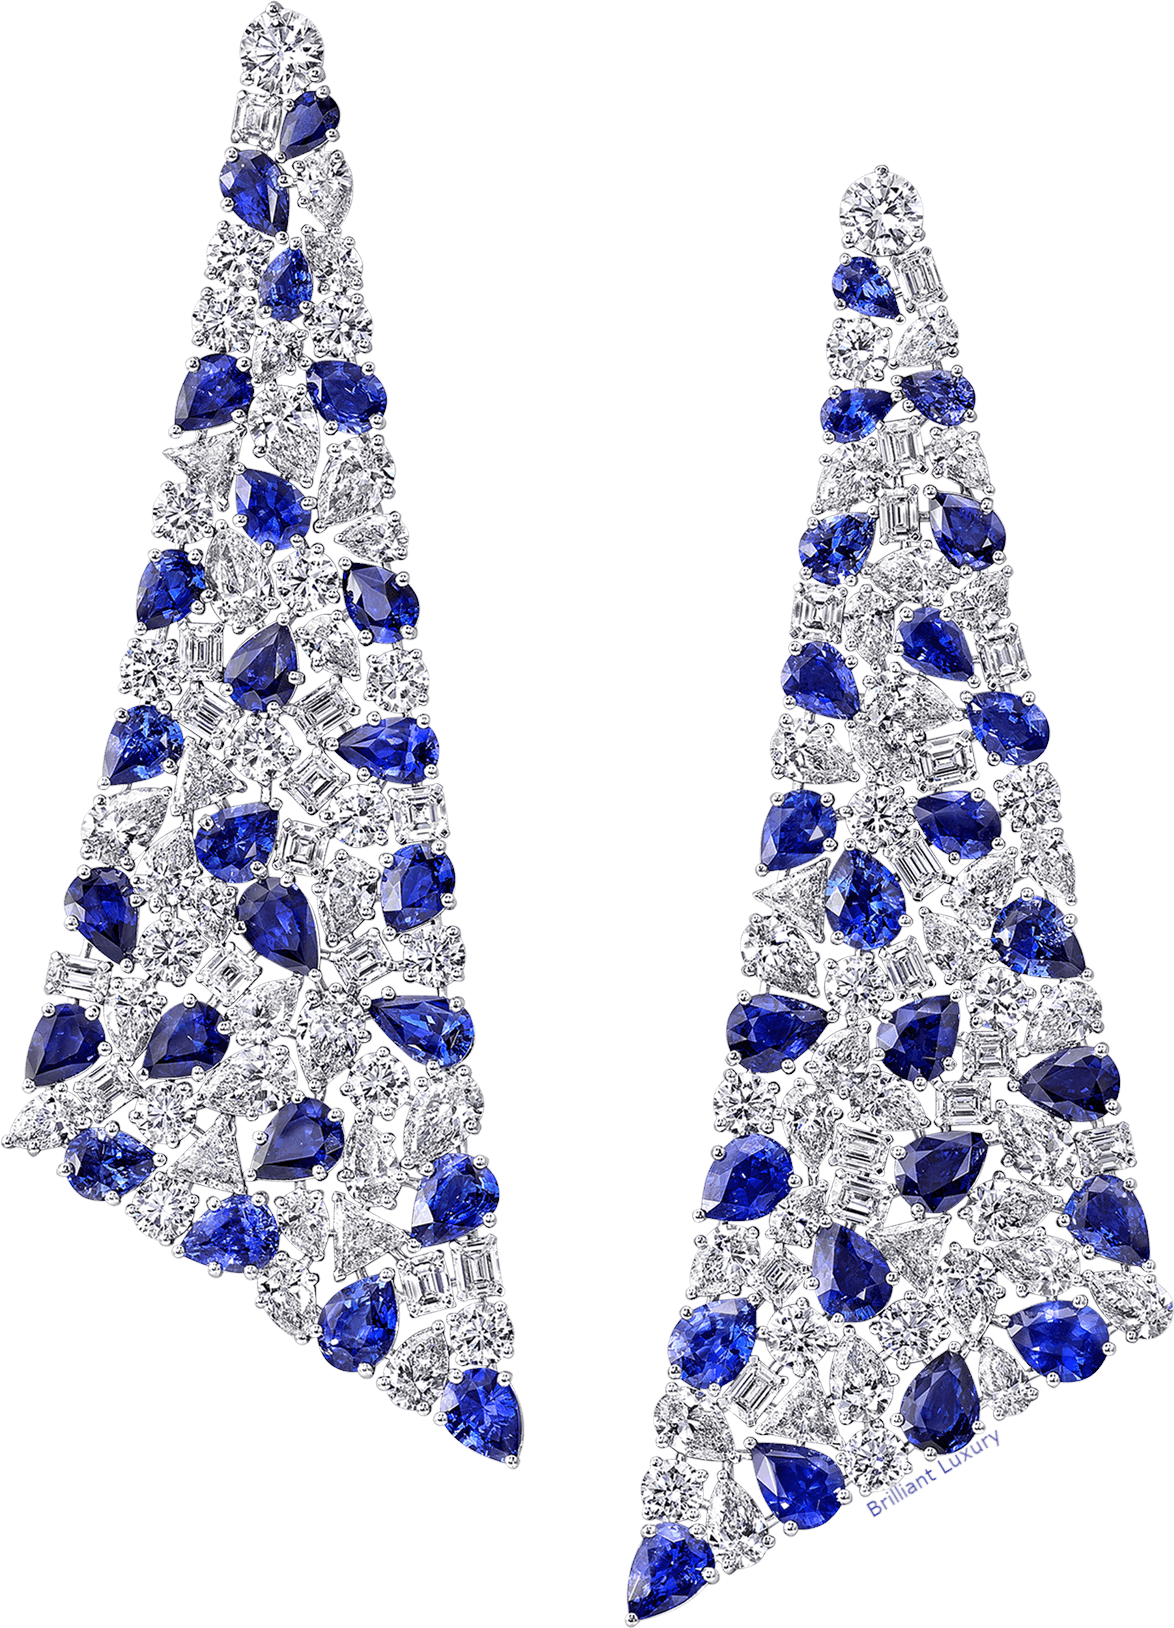 Graff Pantone Princess Blue Jewelry sapphire and diamond earrings